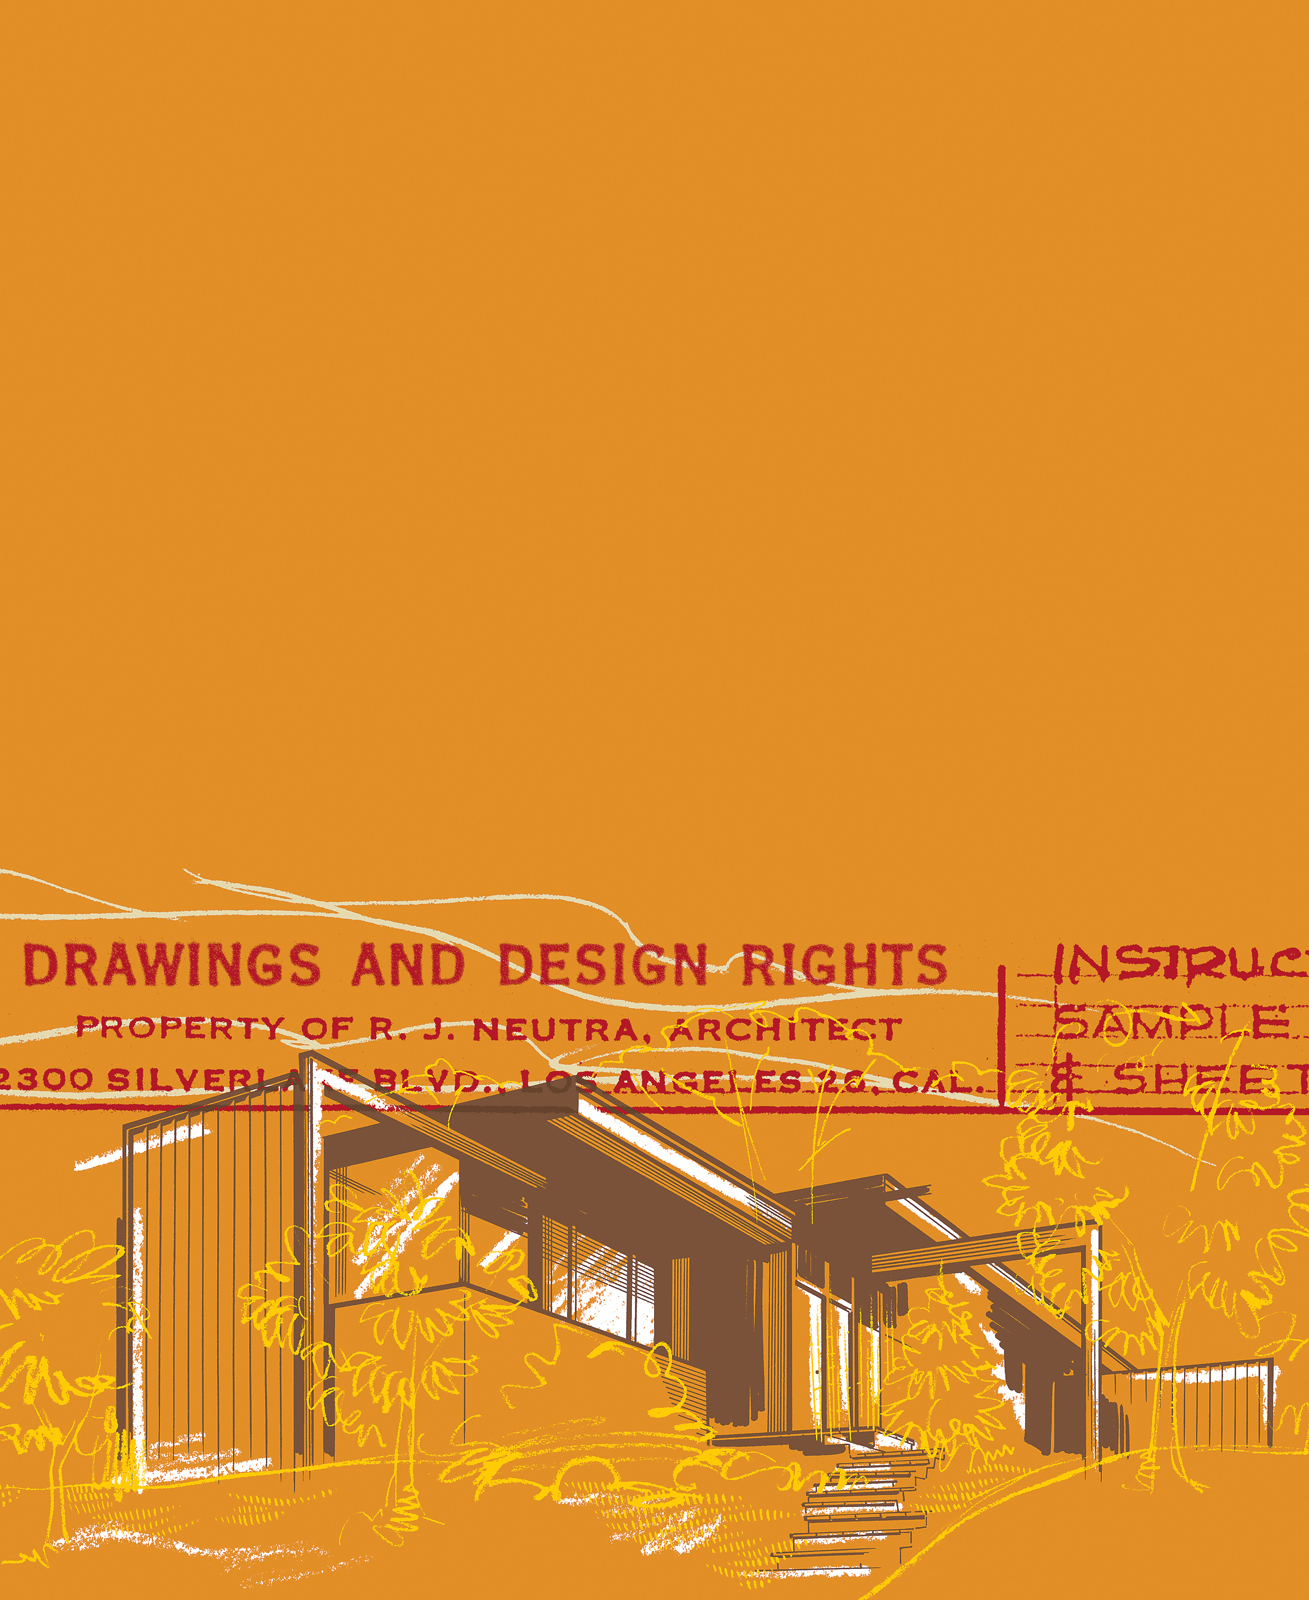 neutra essay illustration drawings design rights